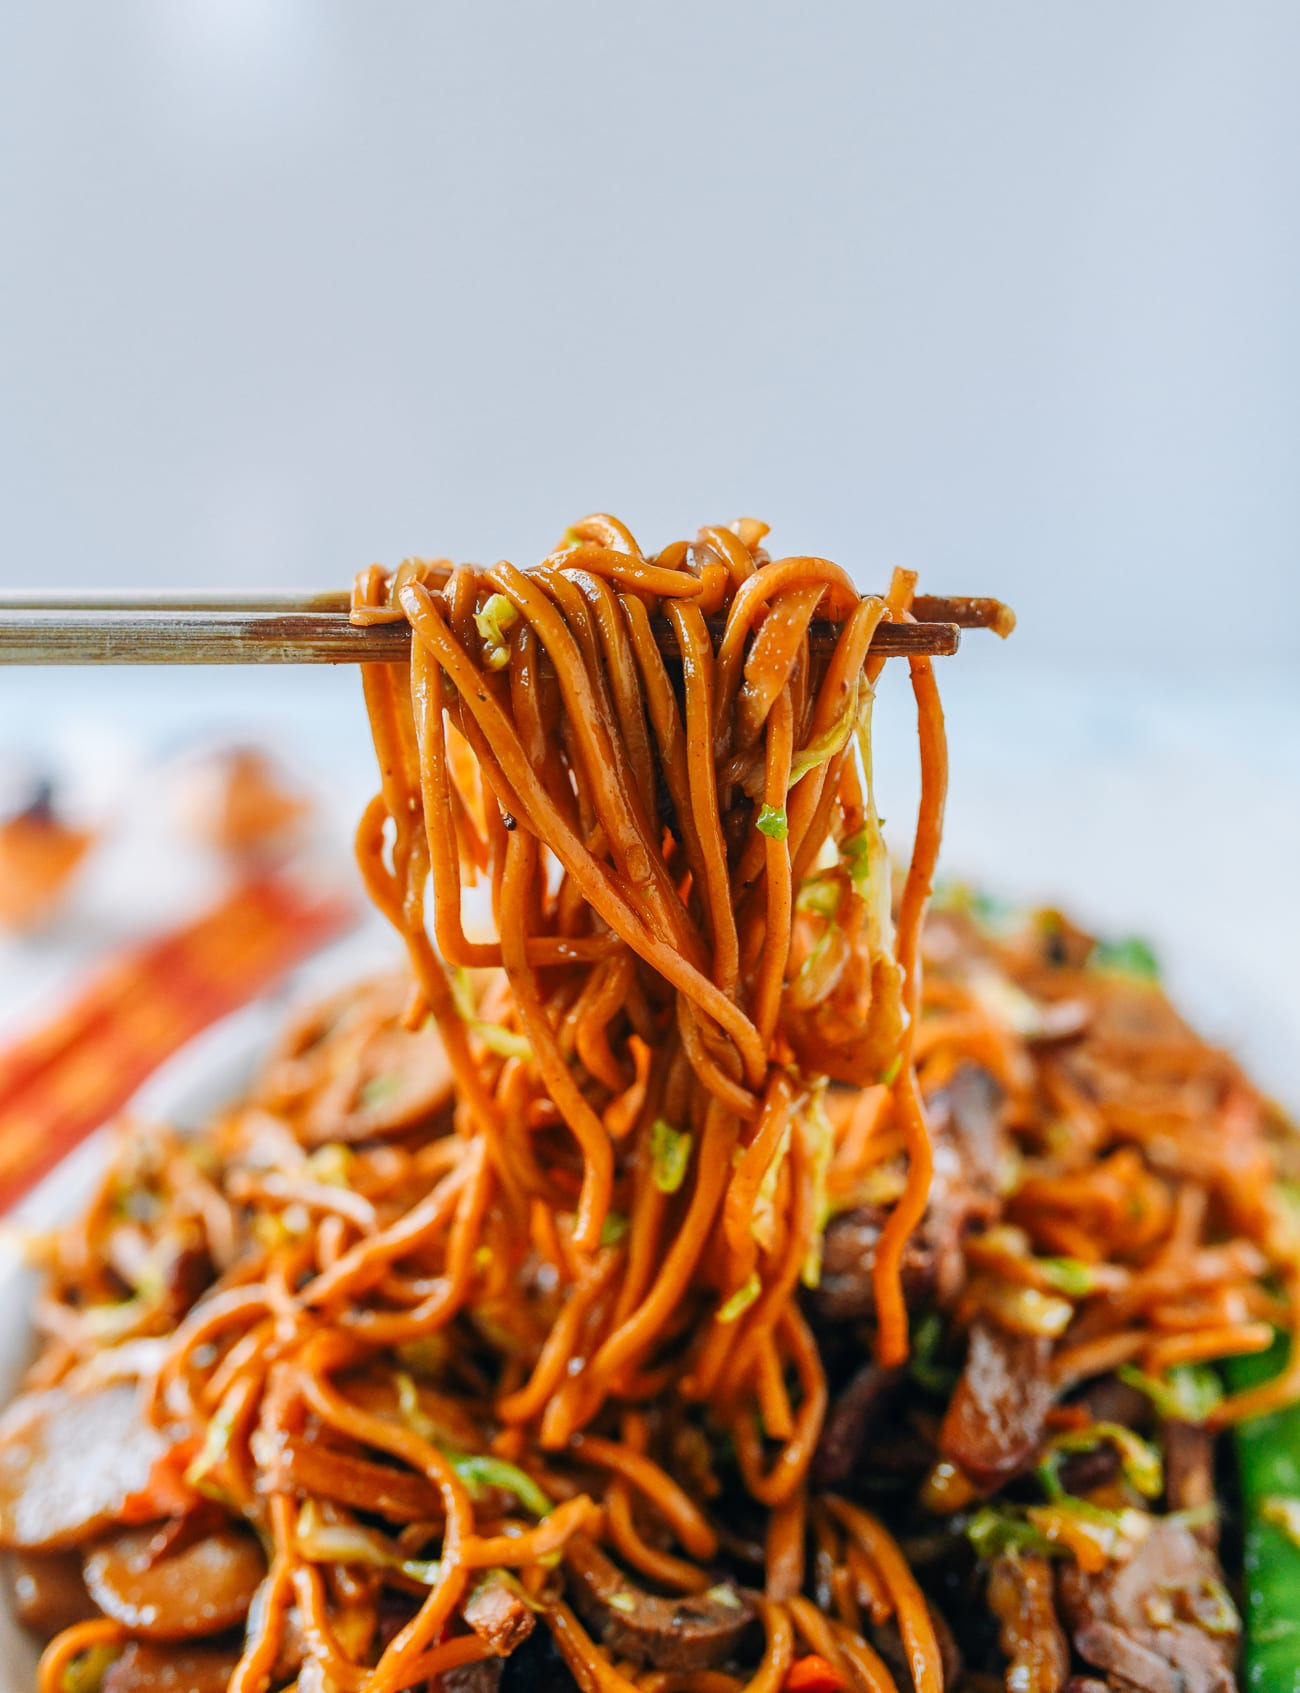 Pulling up strands of lo mein noodles with chopsticks